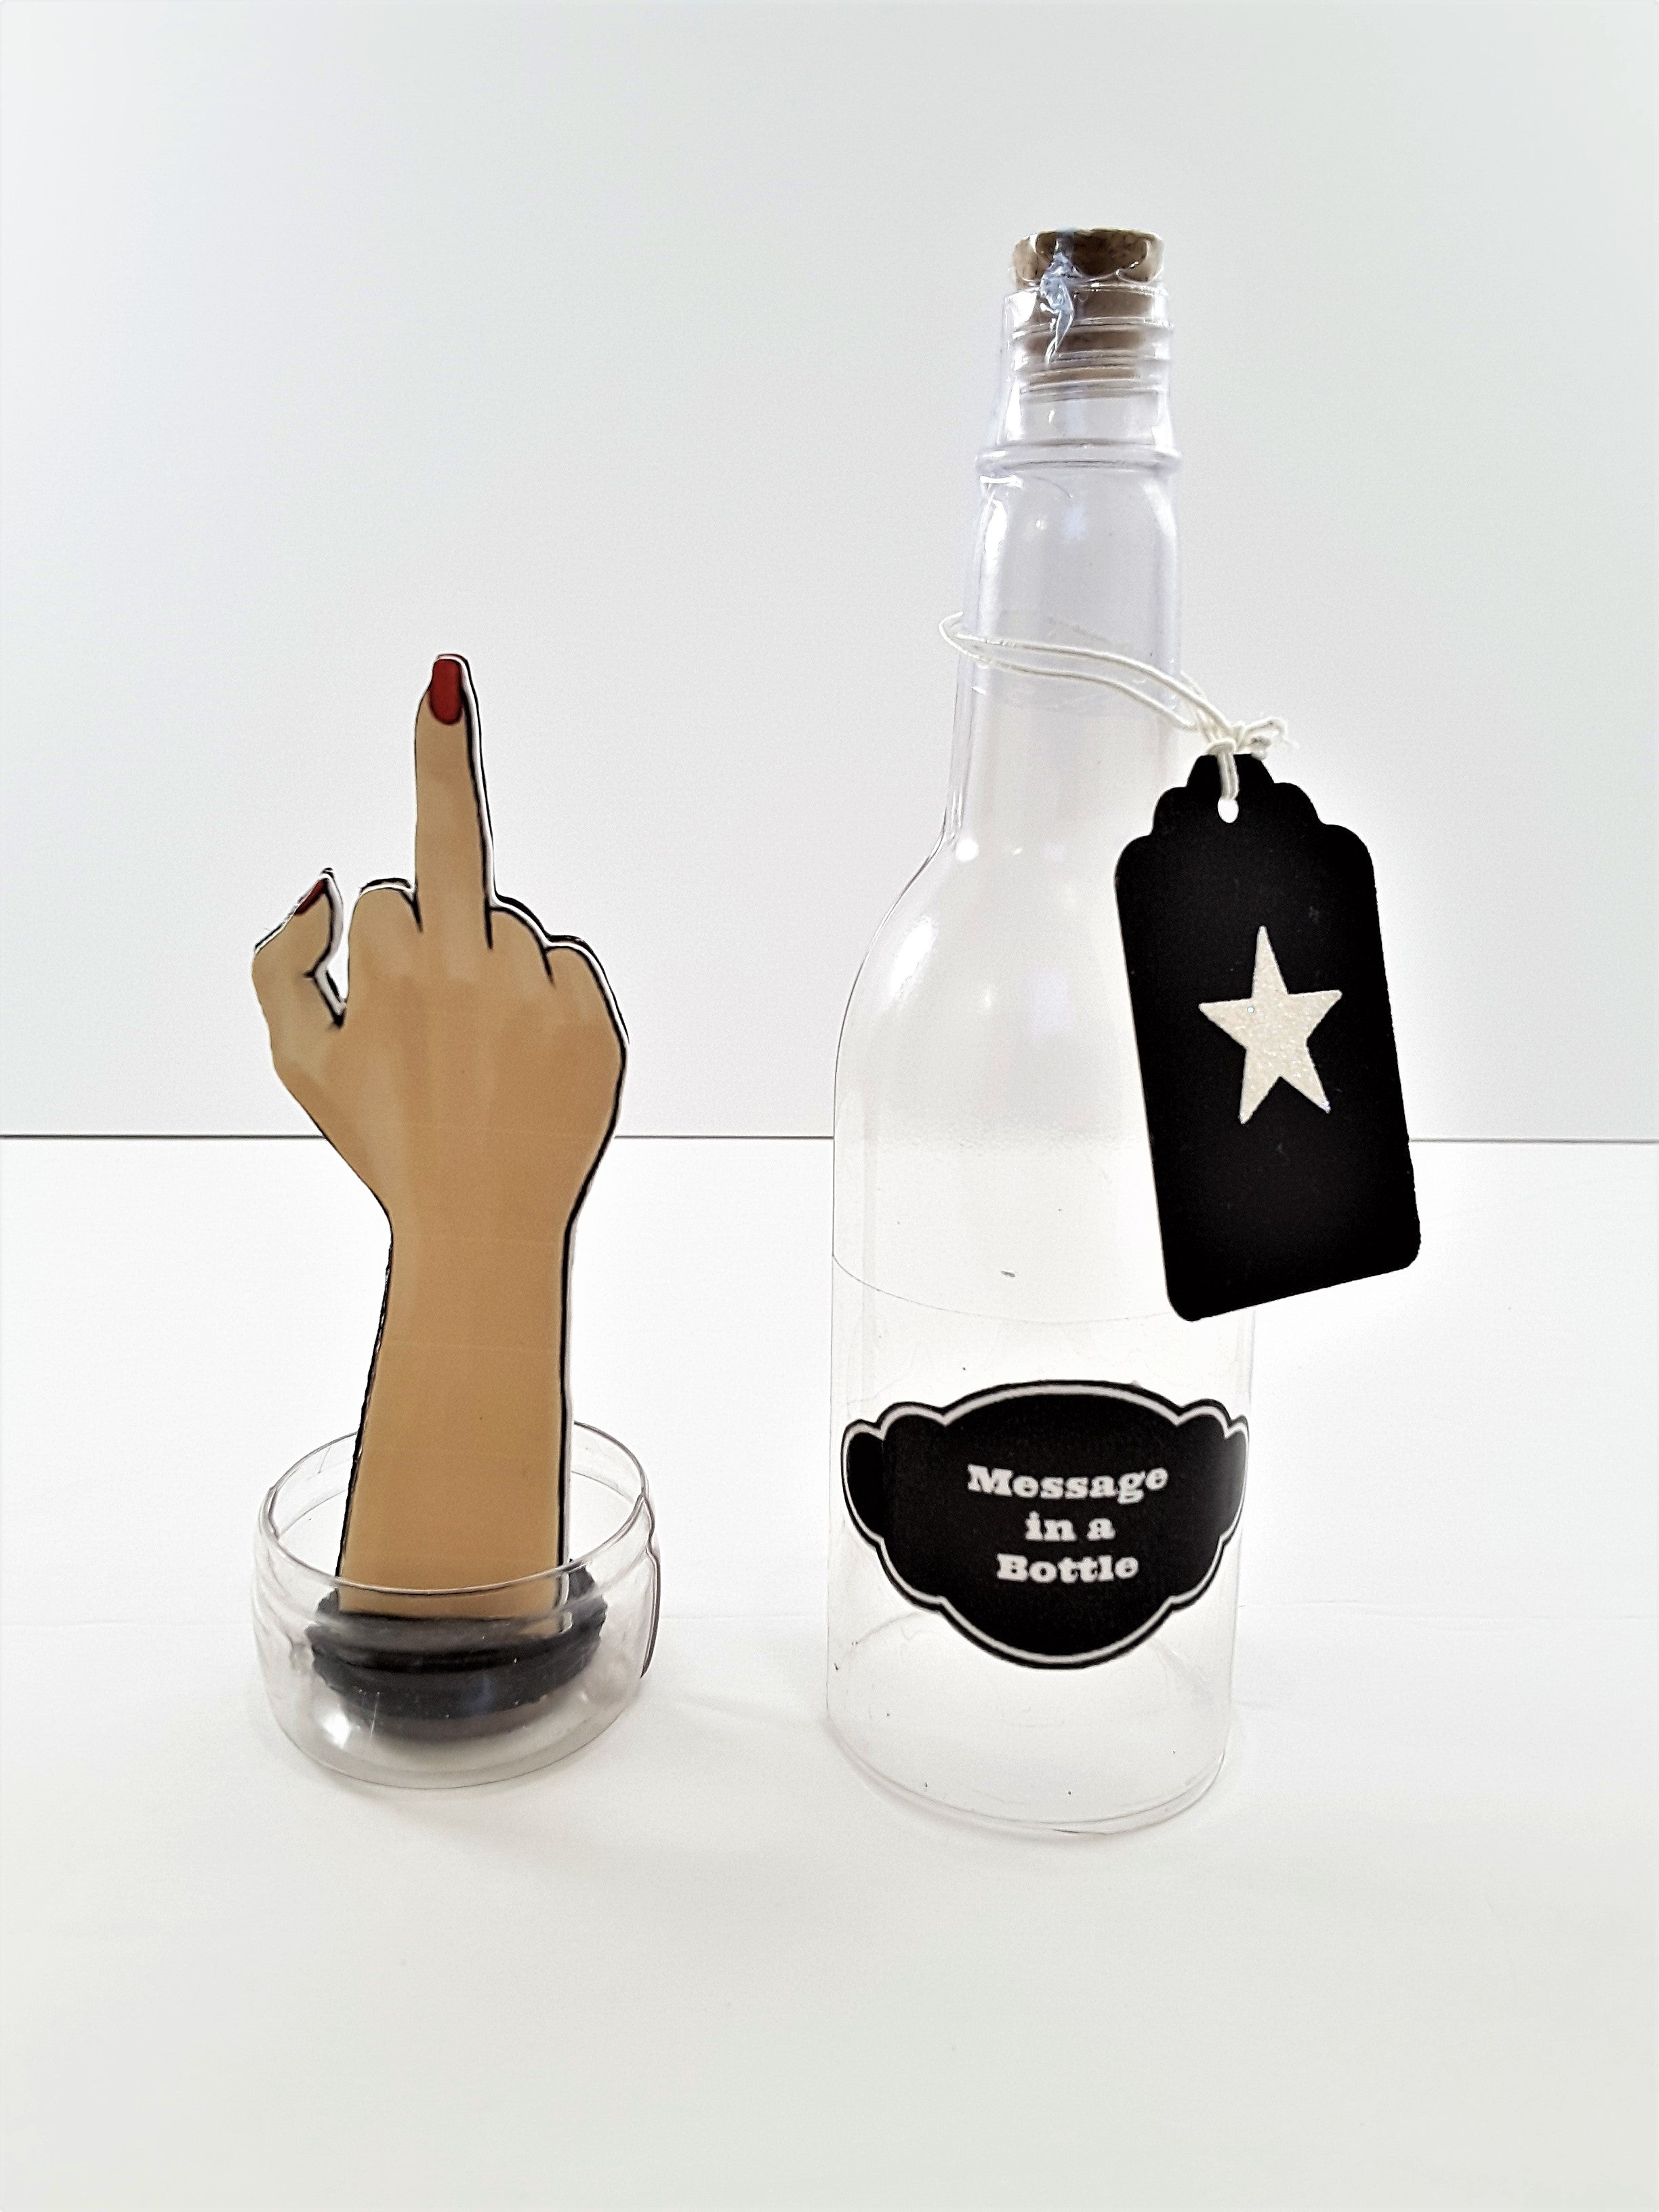 Message in a Bottle 3D Card with Female Hand Flipping the Bird - TheLastWordBish.com